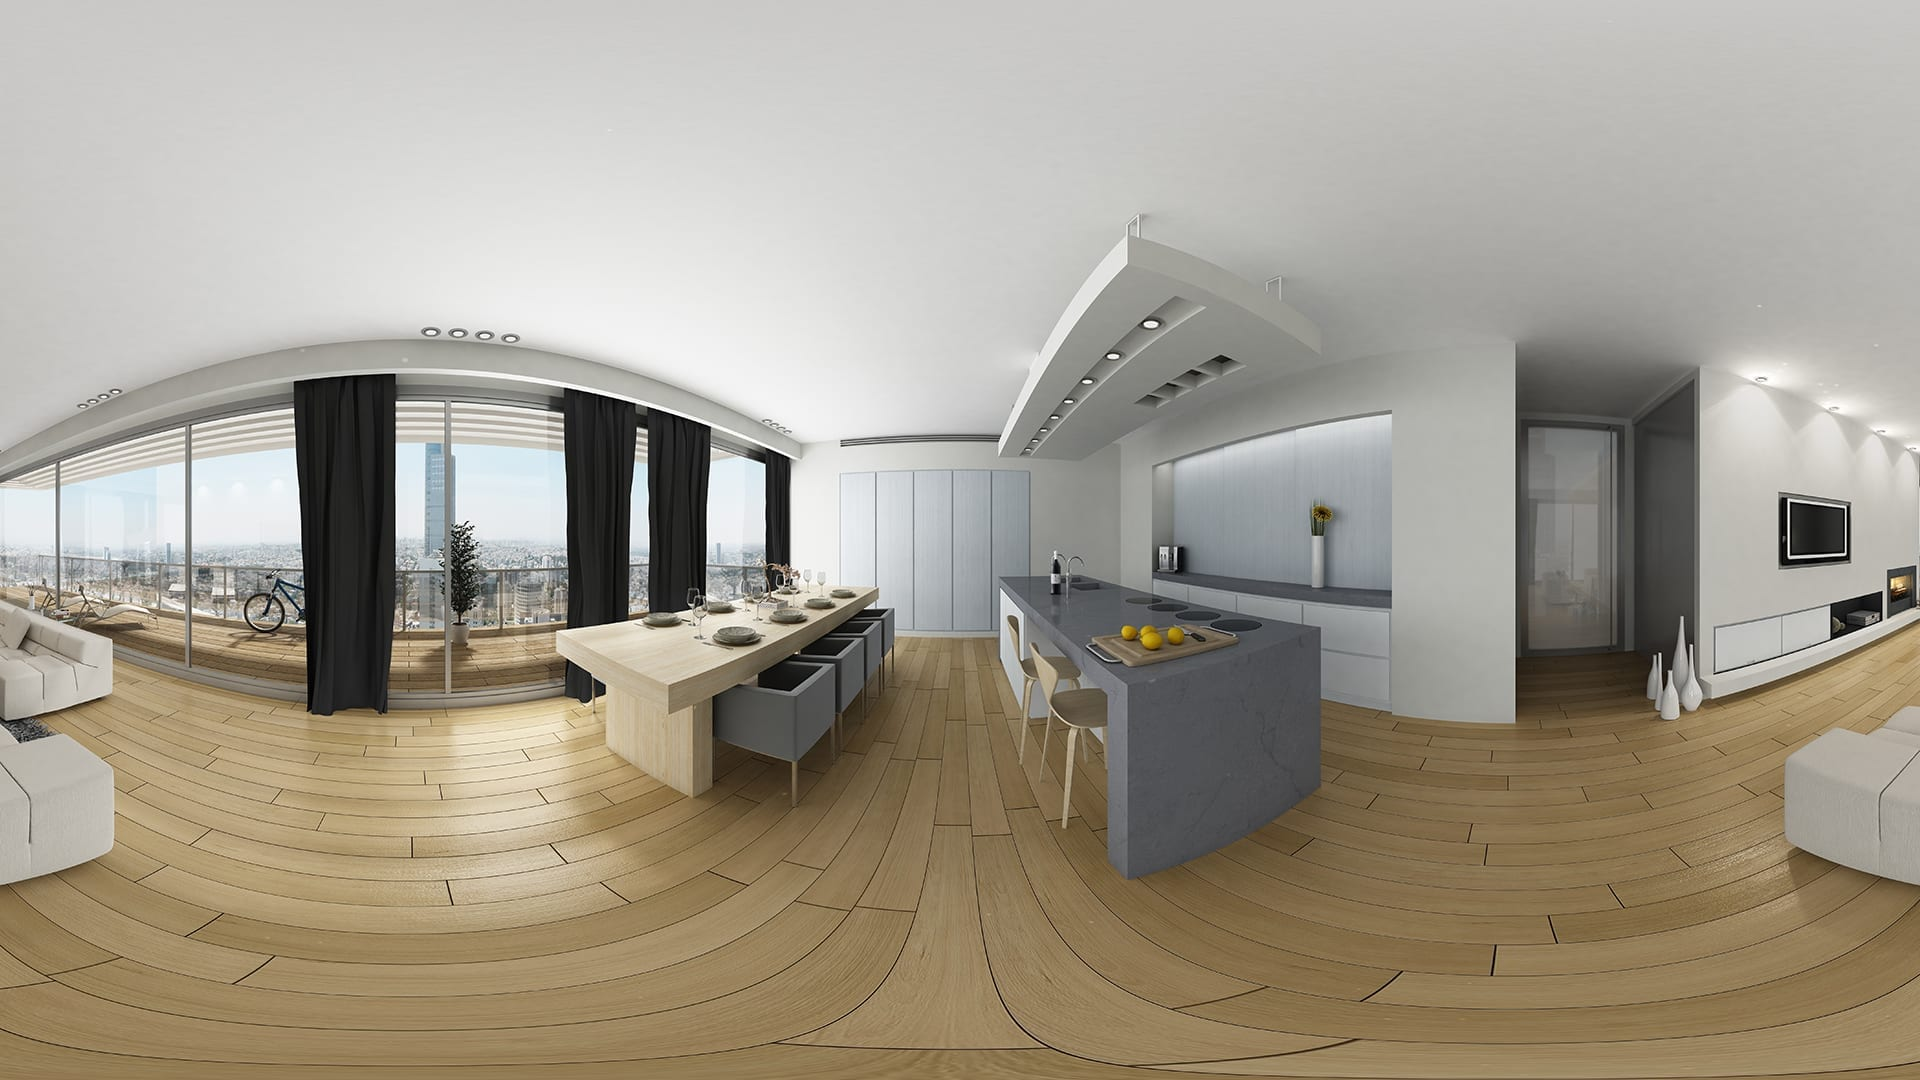 Maayan-Golan_Architectural-Visualization_3D-virtual-tour_panoramic-render_public-space